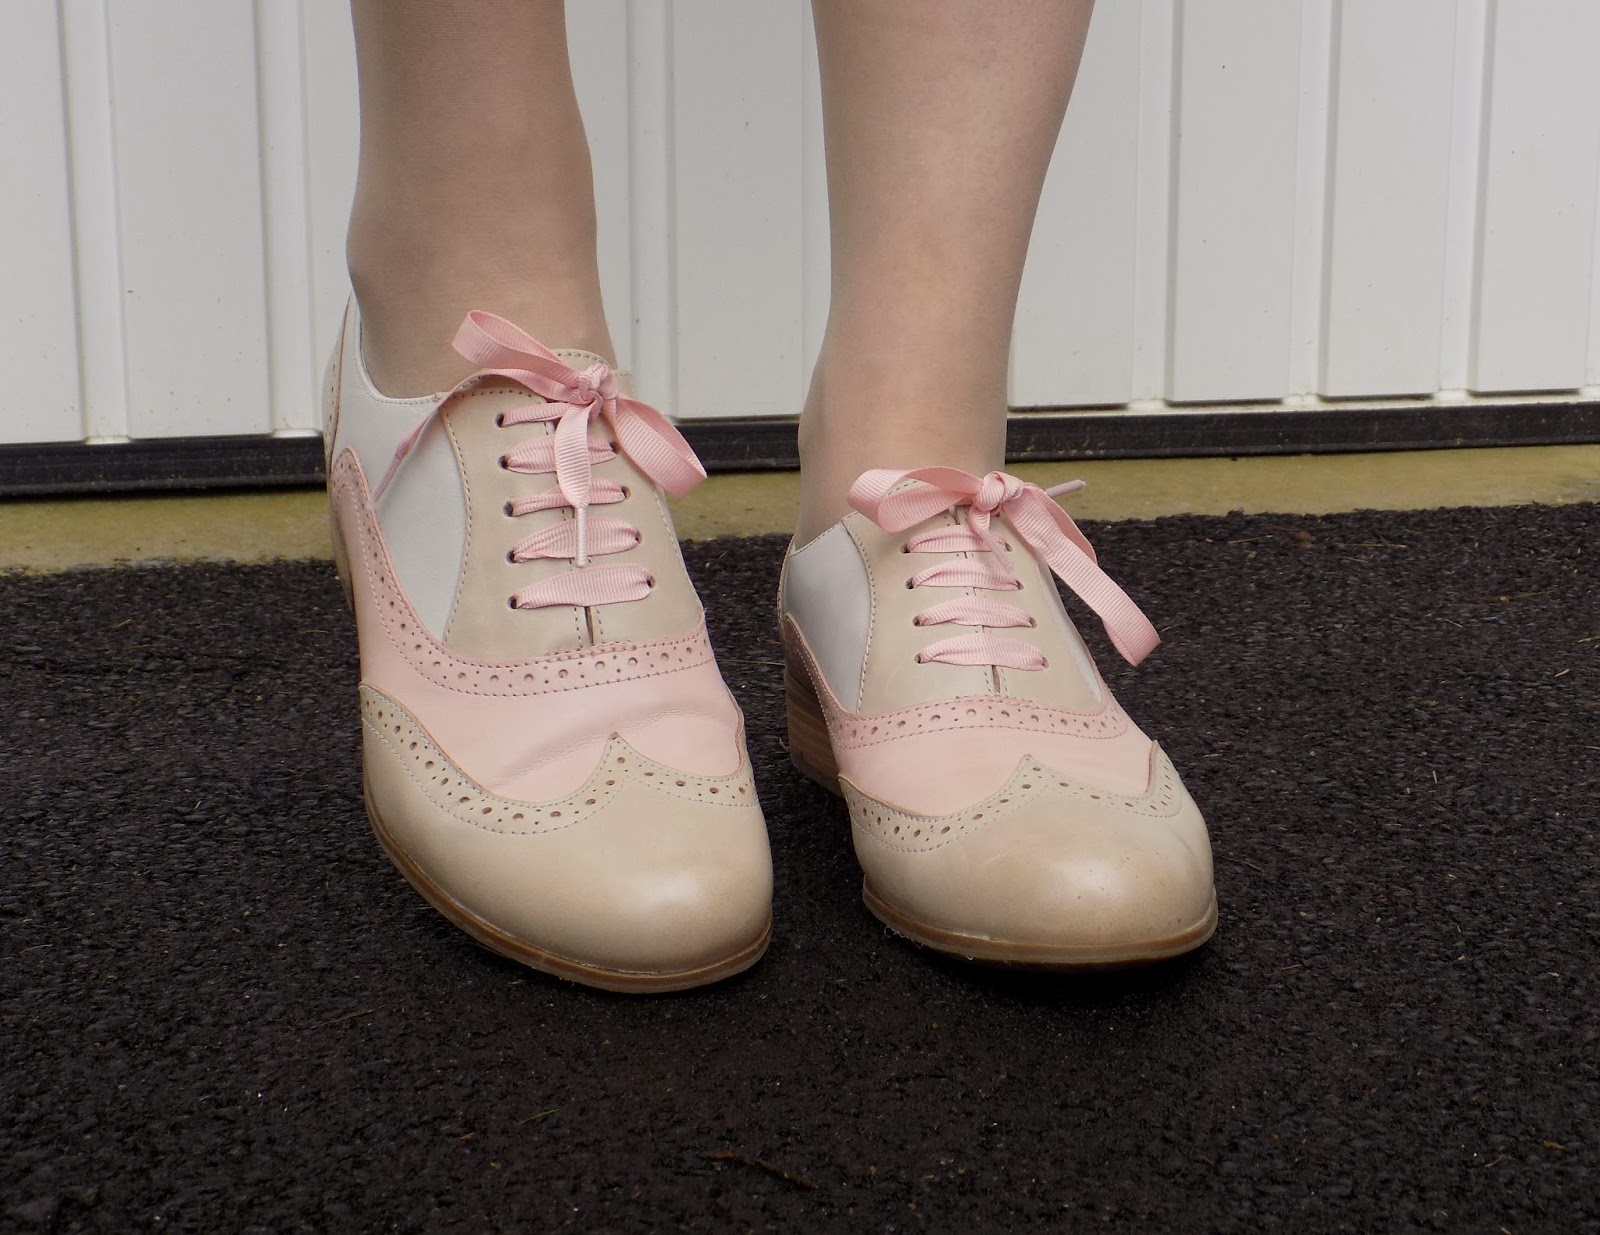 Clarks Hamble Oak pink brogues with ribbons